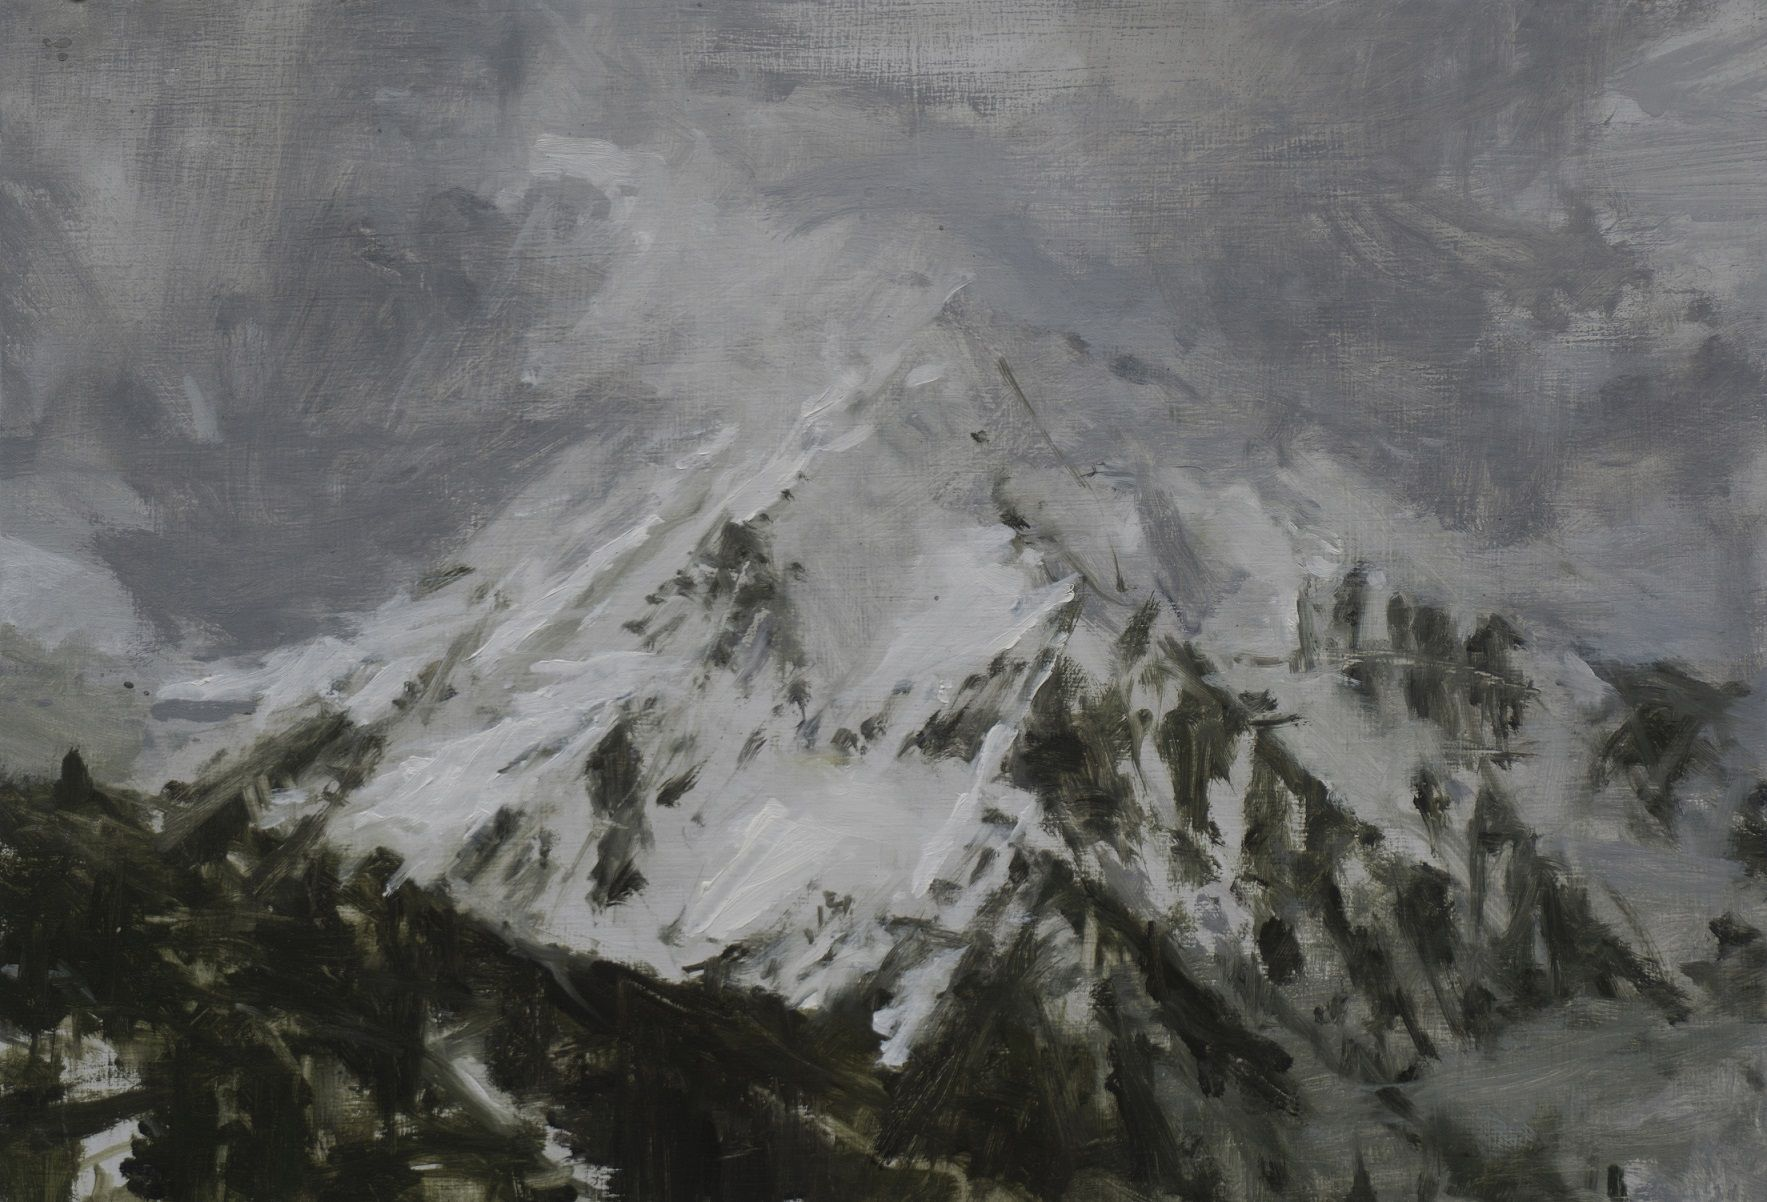 Benasque Study 3, Snow collection,Calo  Carratalá,Contemporary painting